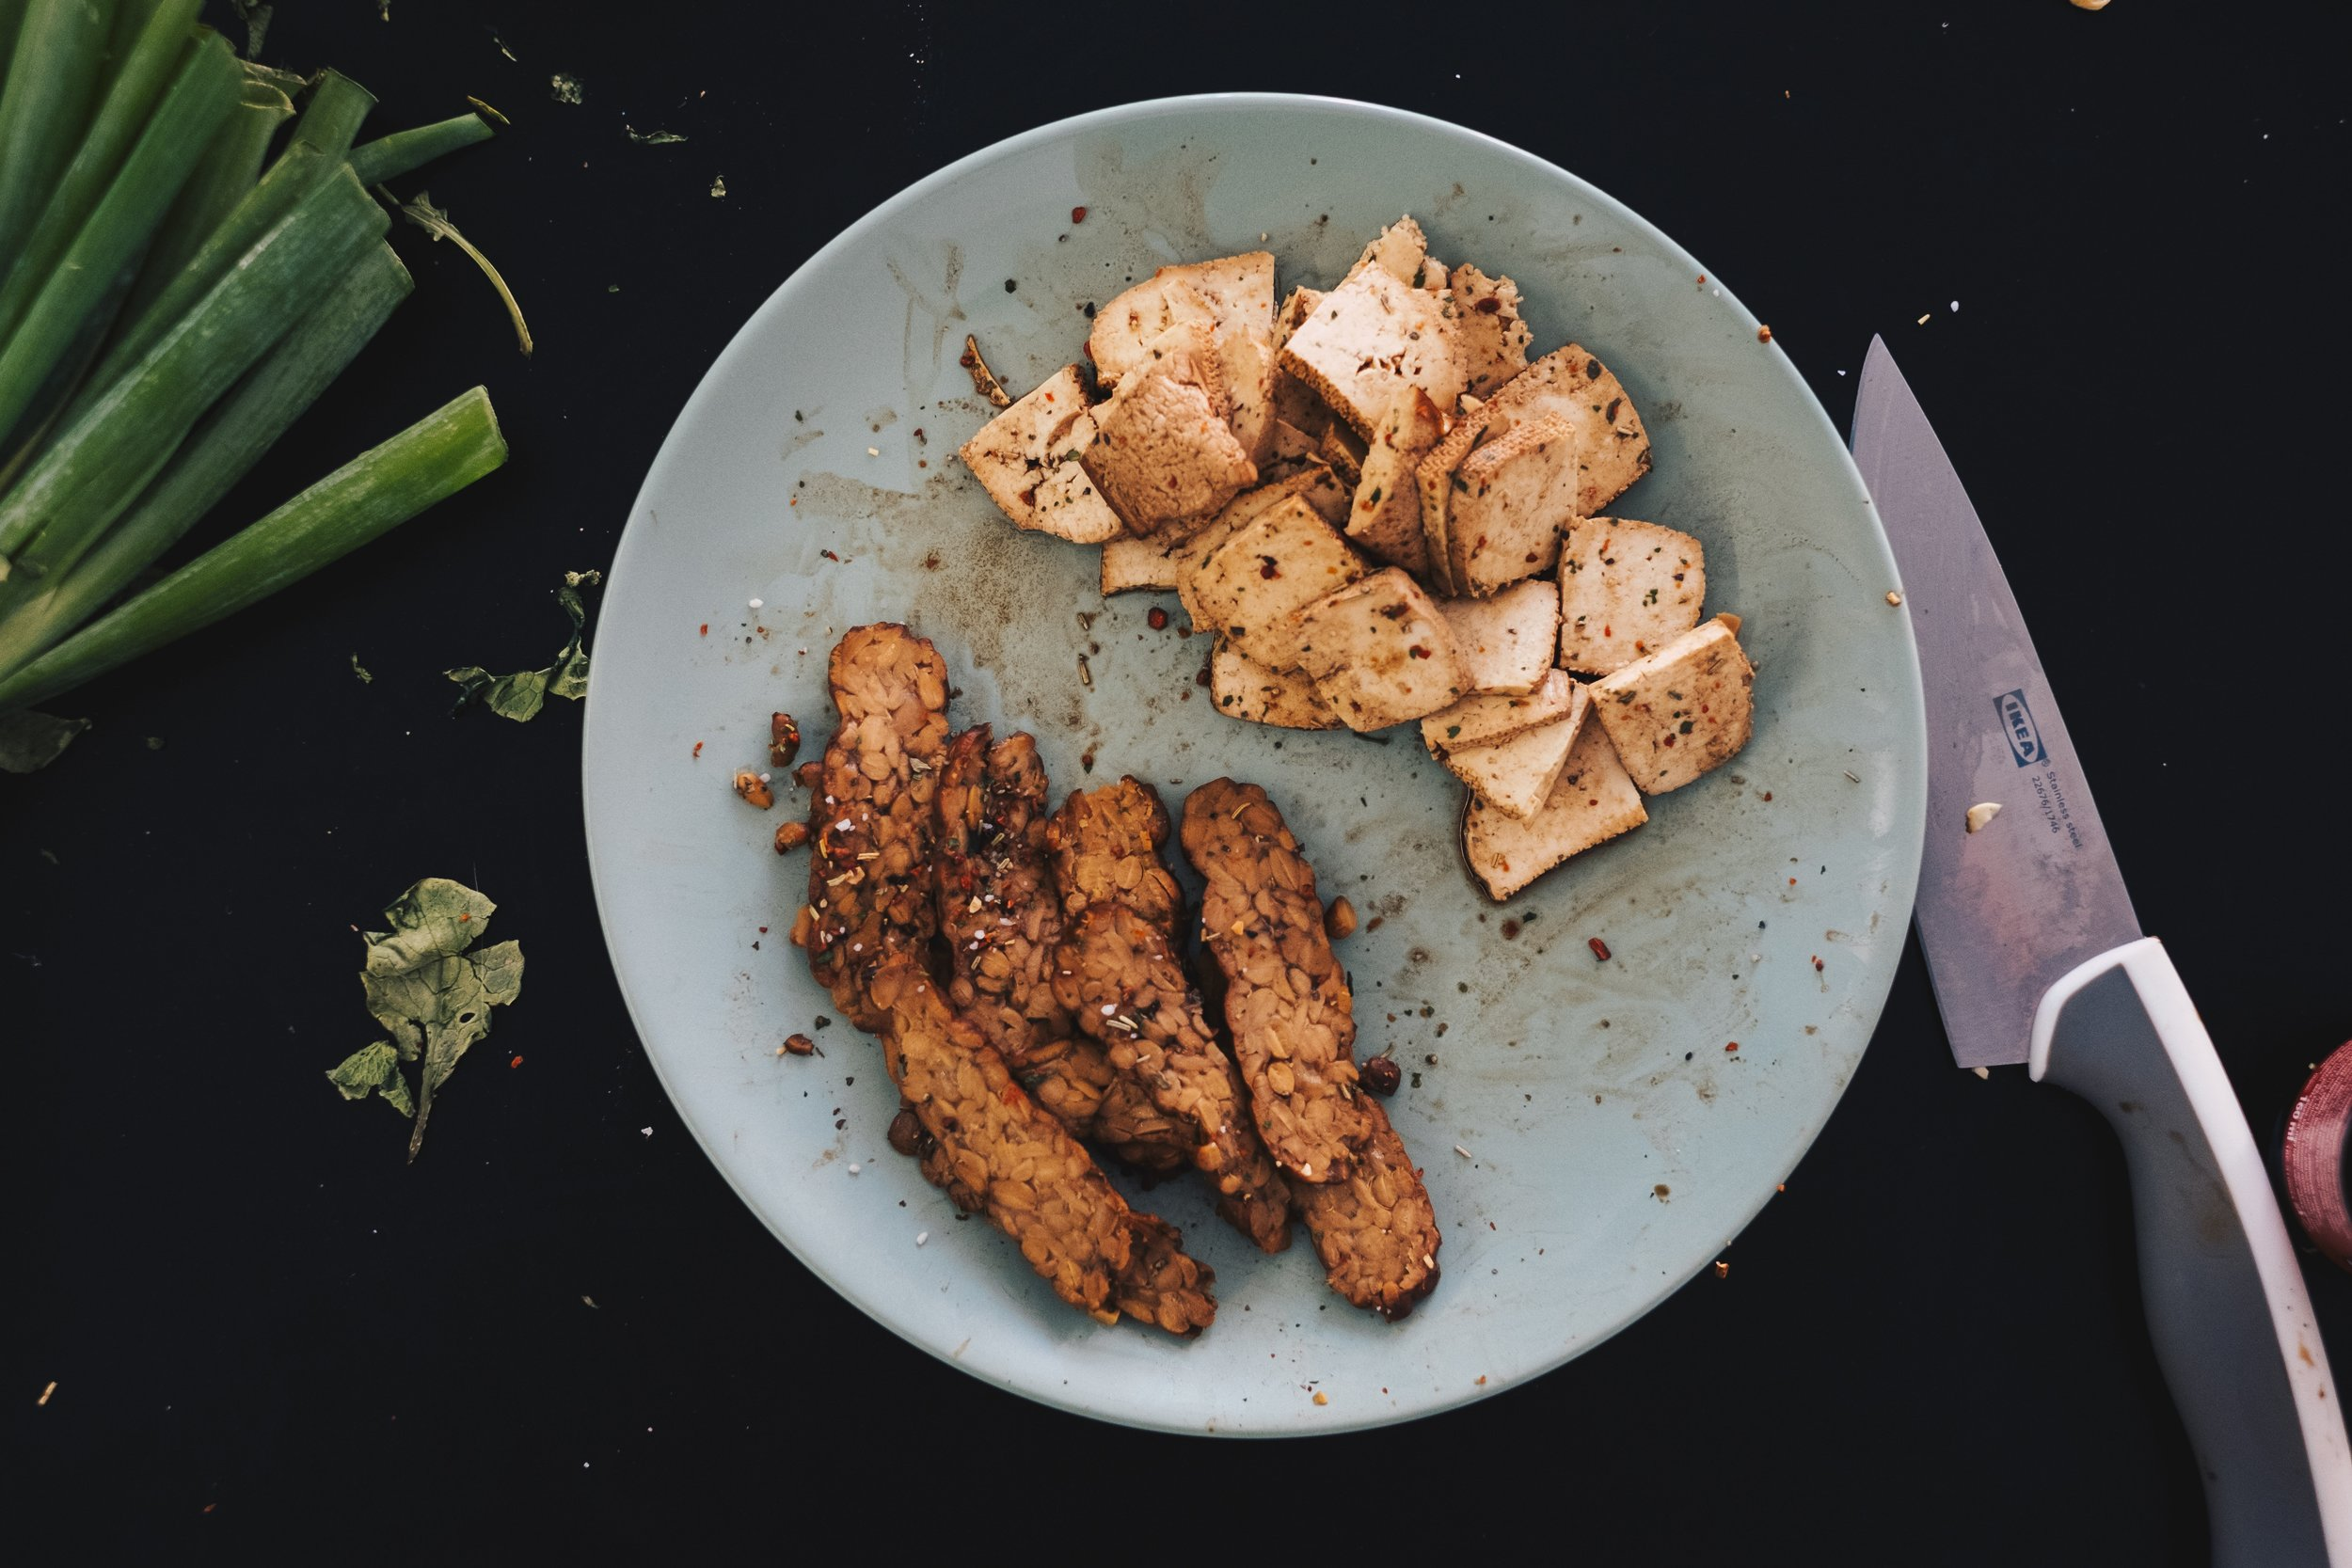 Tempeh is a traditional soy product originating from Indonesia